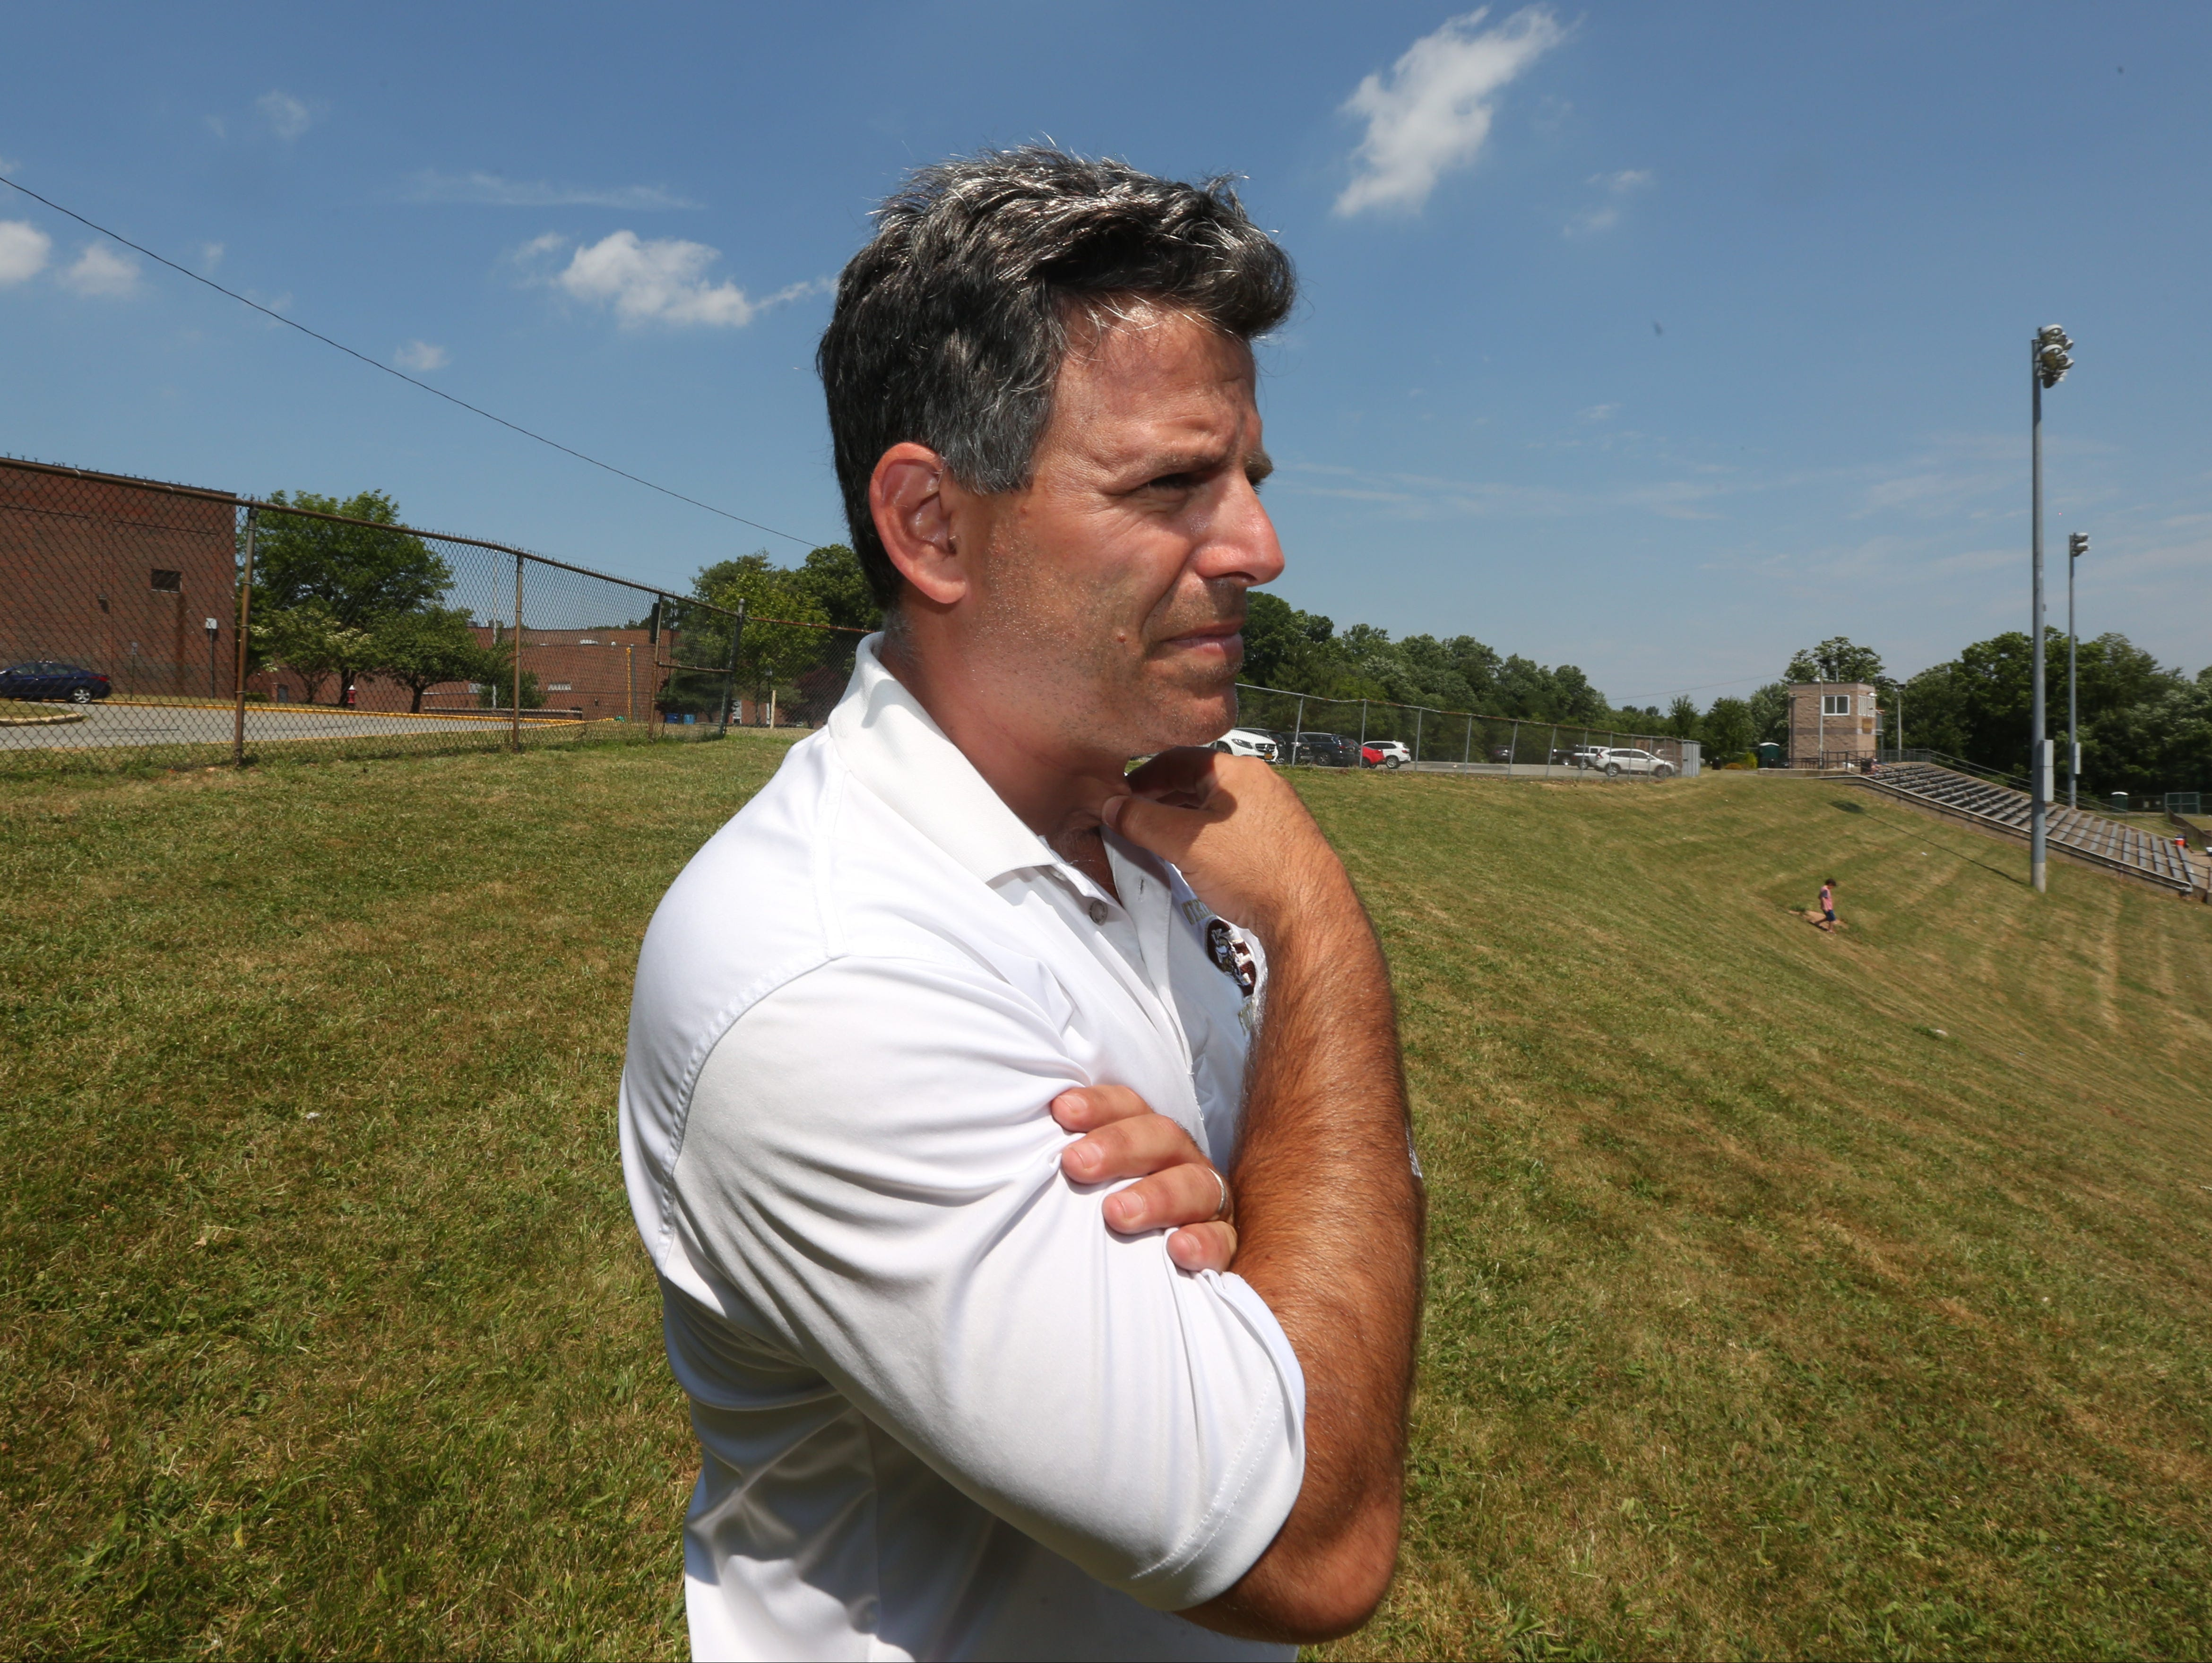 Clarkstown South football coach Mike Scarpelli.